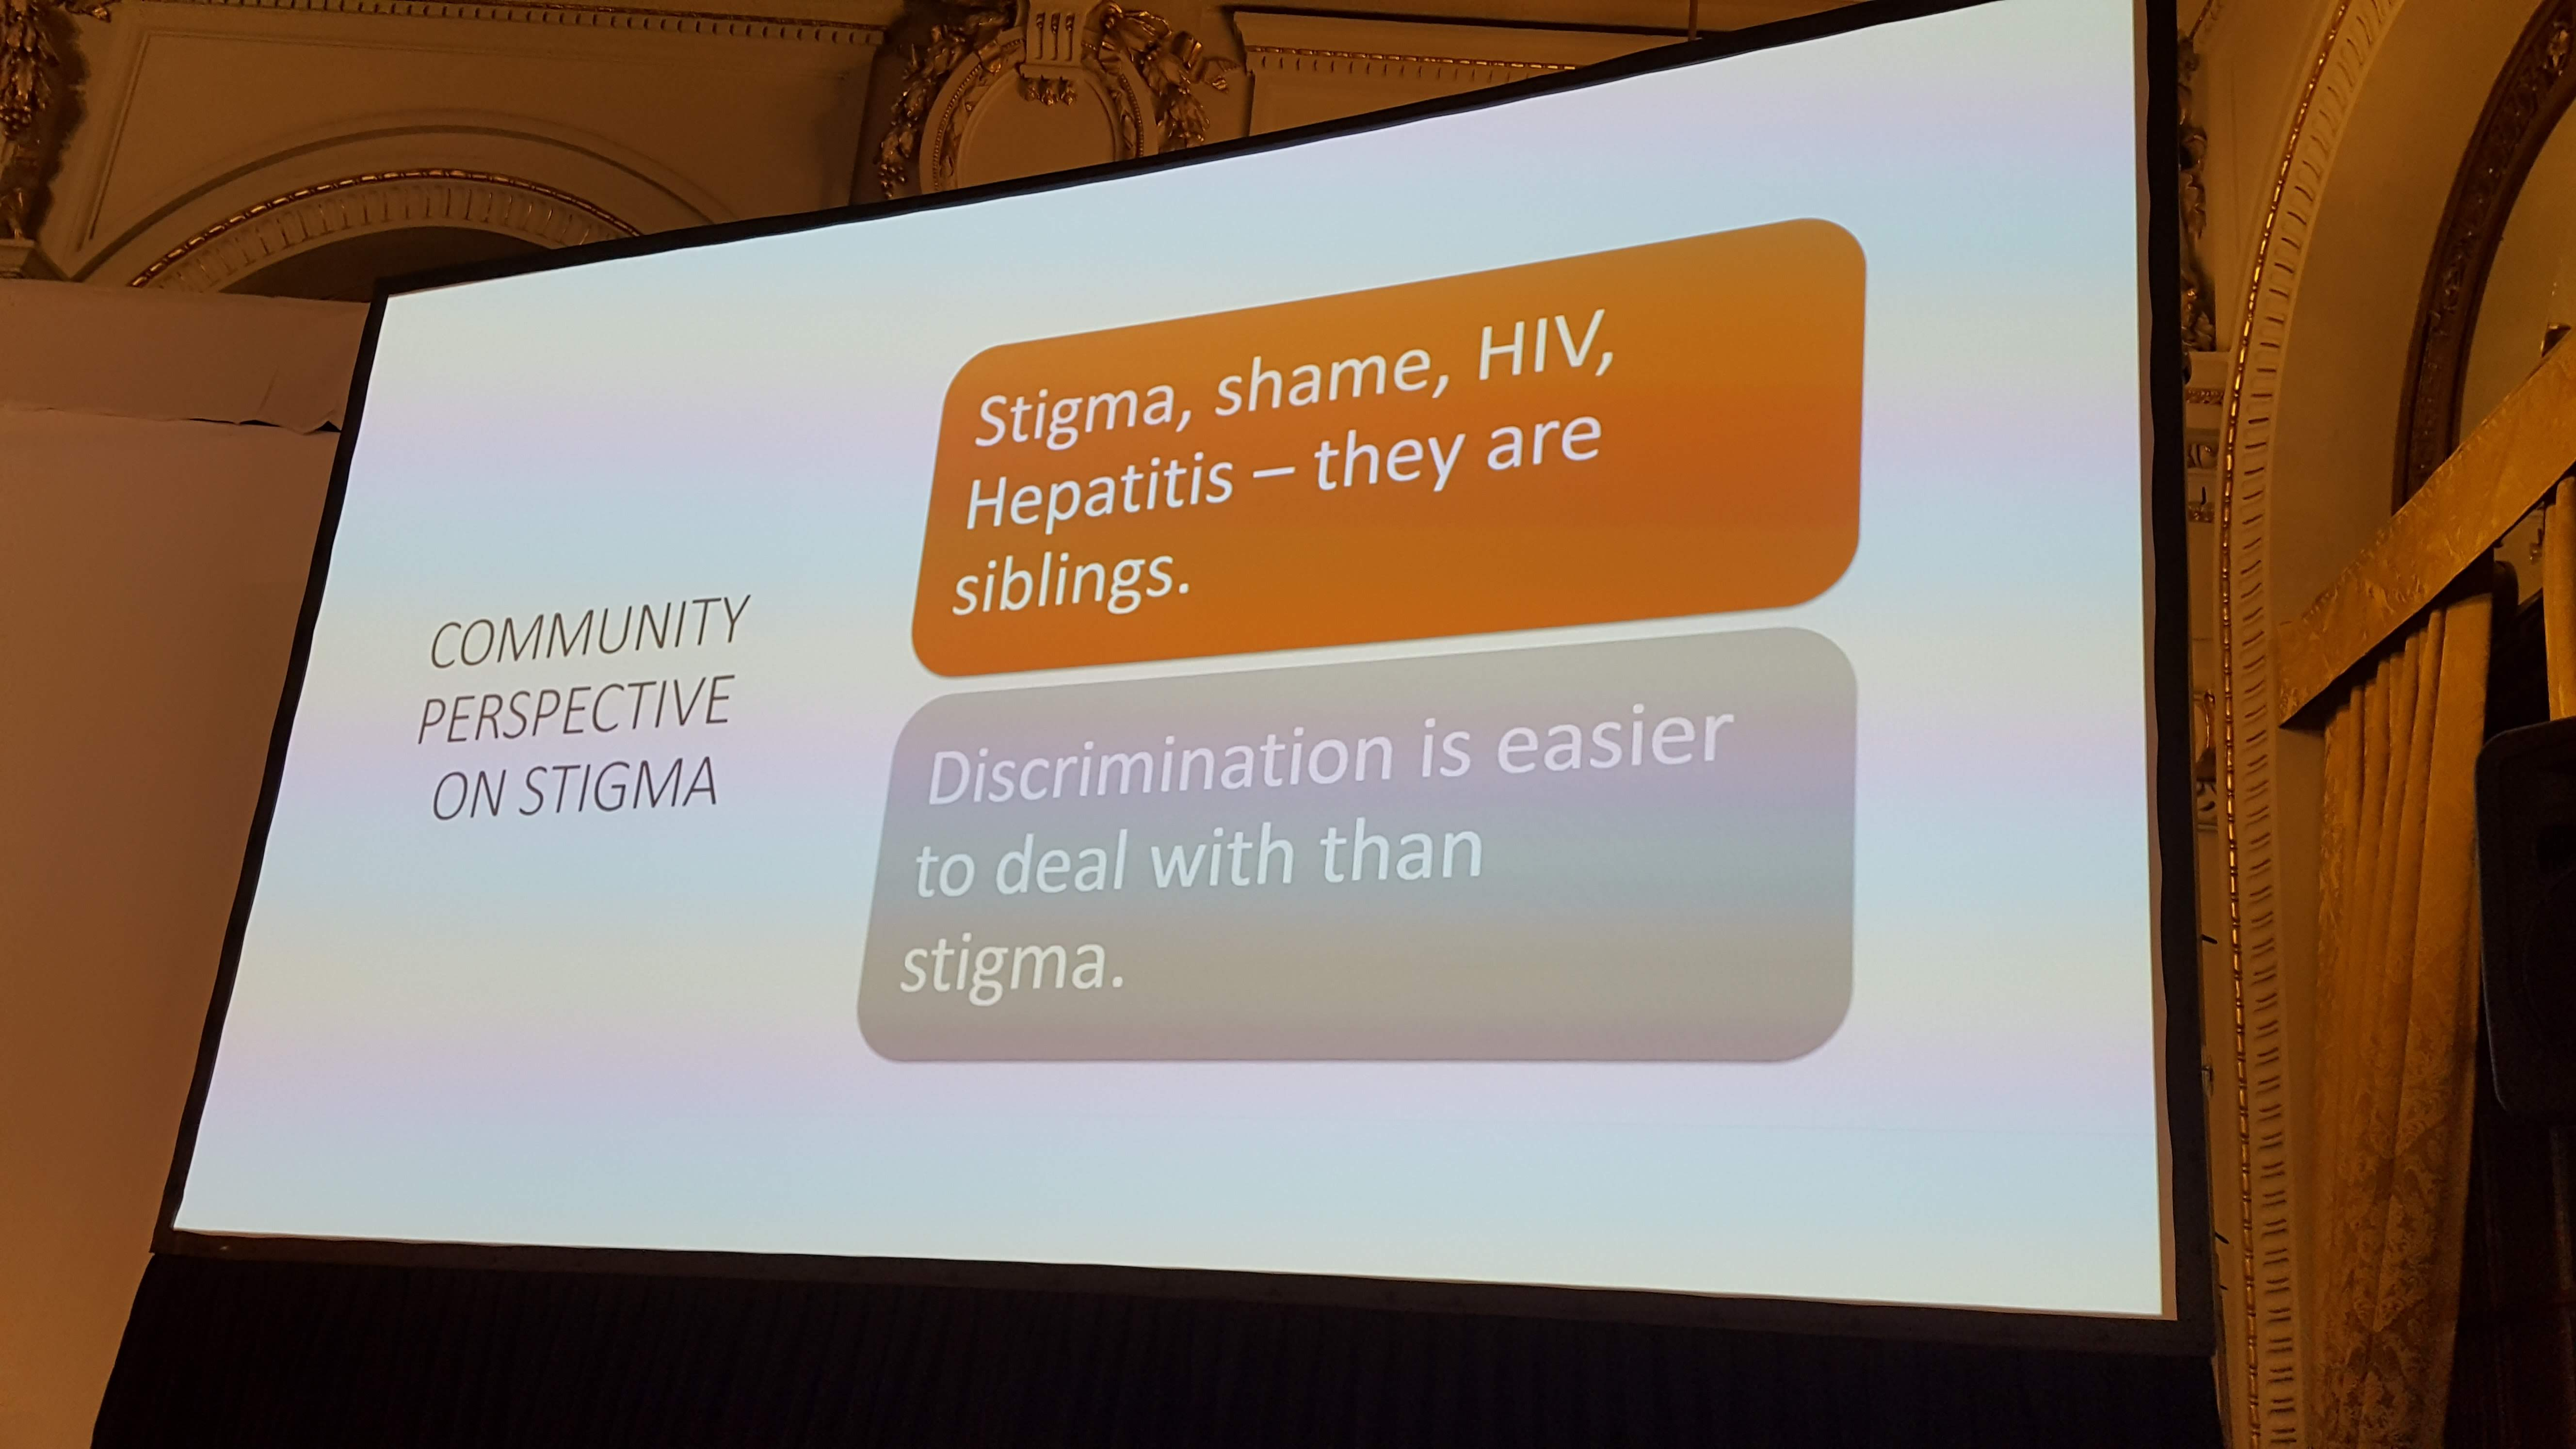 Community Perspective on Stigma, HepHIV 2019